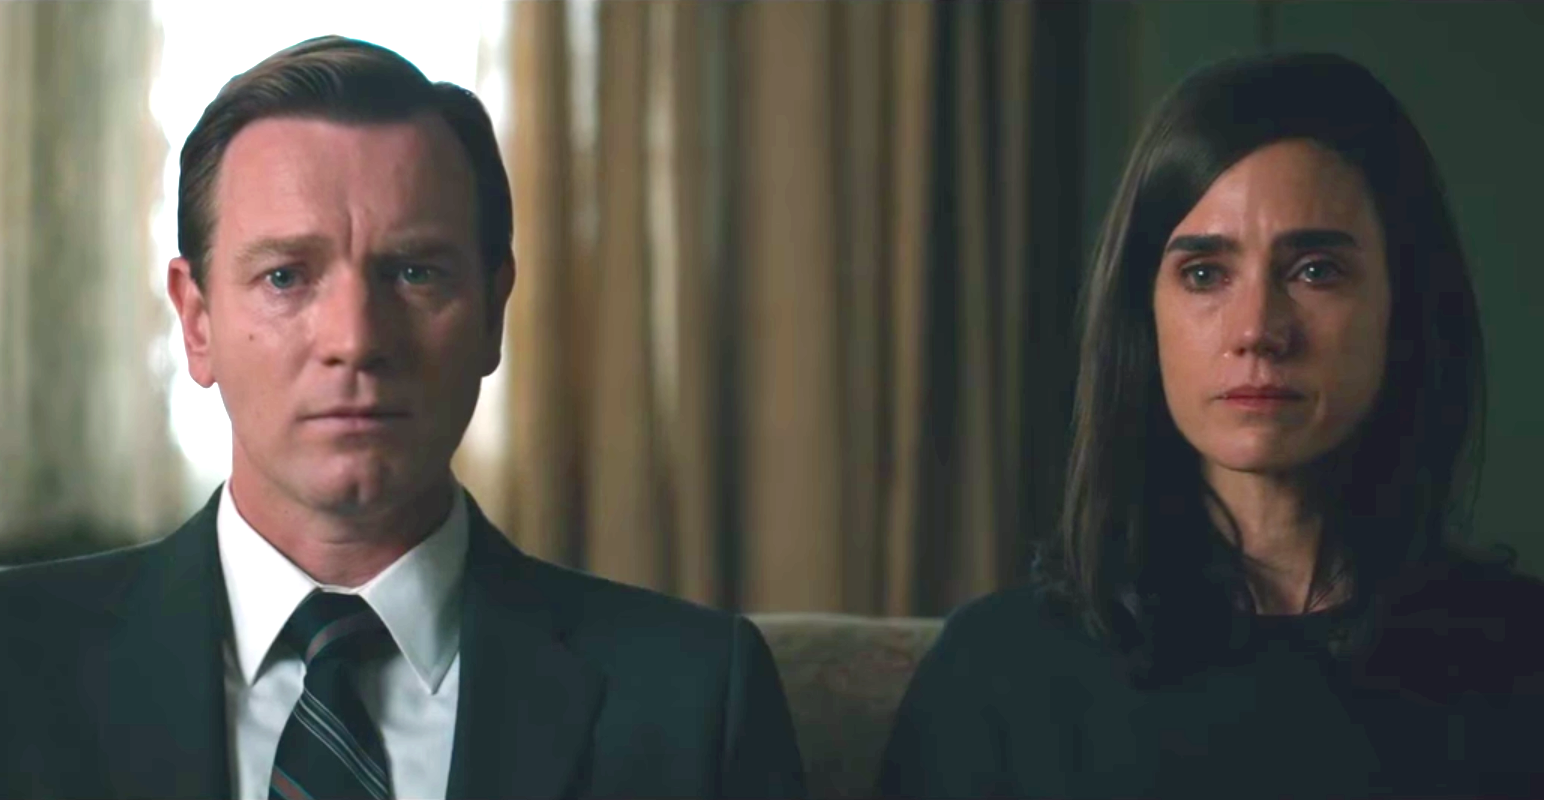 American Pastoral (2016), Ewan McGregor, Jennifer Connelly